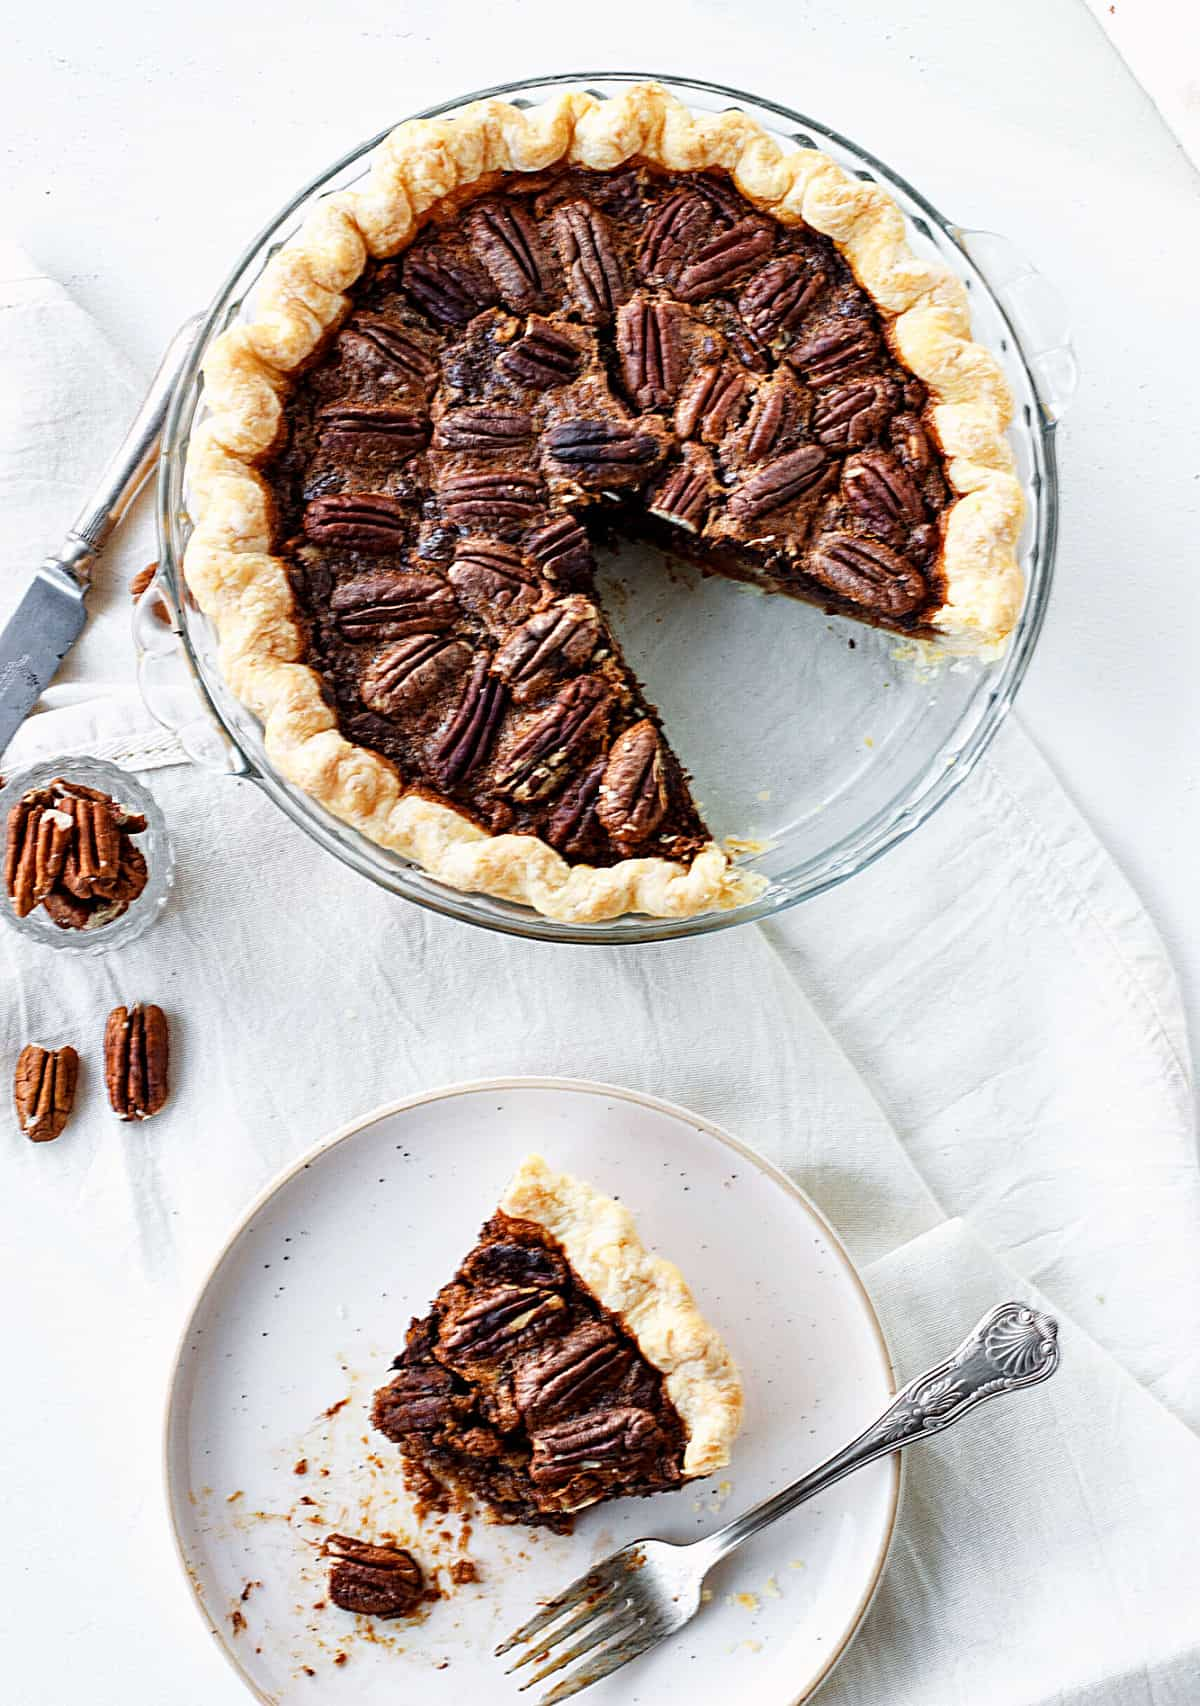 Aerial view of pecan pie in glass dish, slice on a plate with fork, white cloth and surface, loose pecans